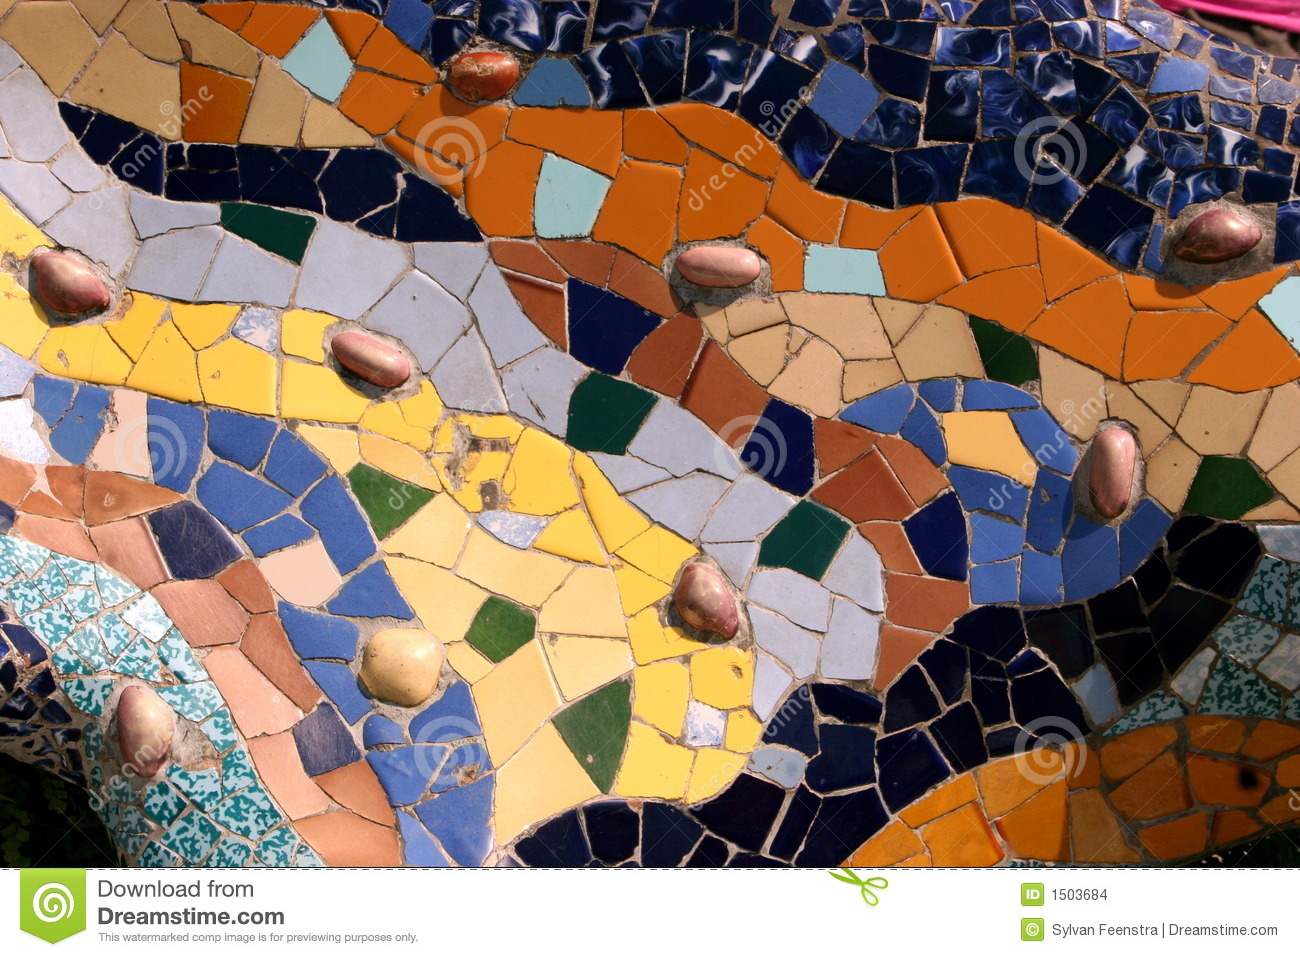 Gaudi s Park Guell in Barcelona - mosaic